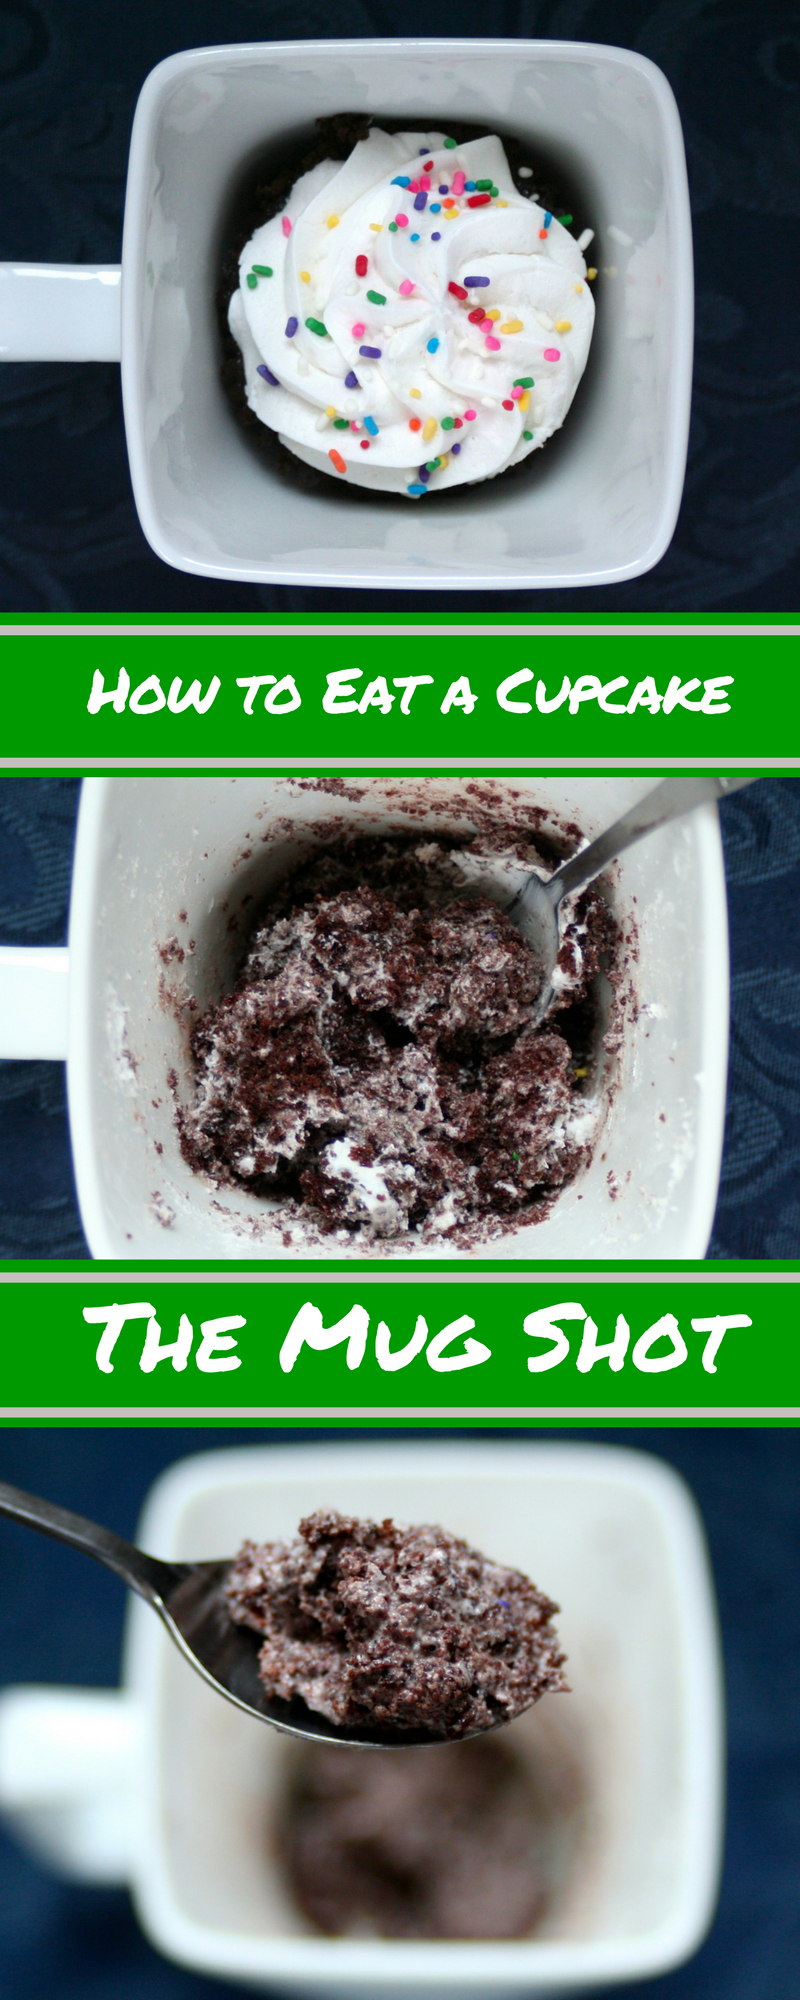 How to Eat a Cupcake - the Mug Shot.png